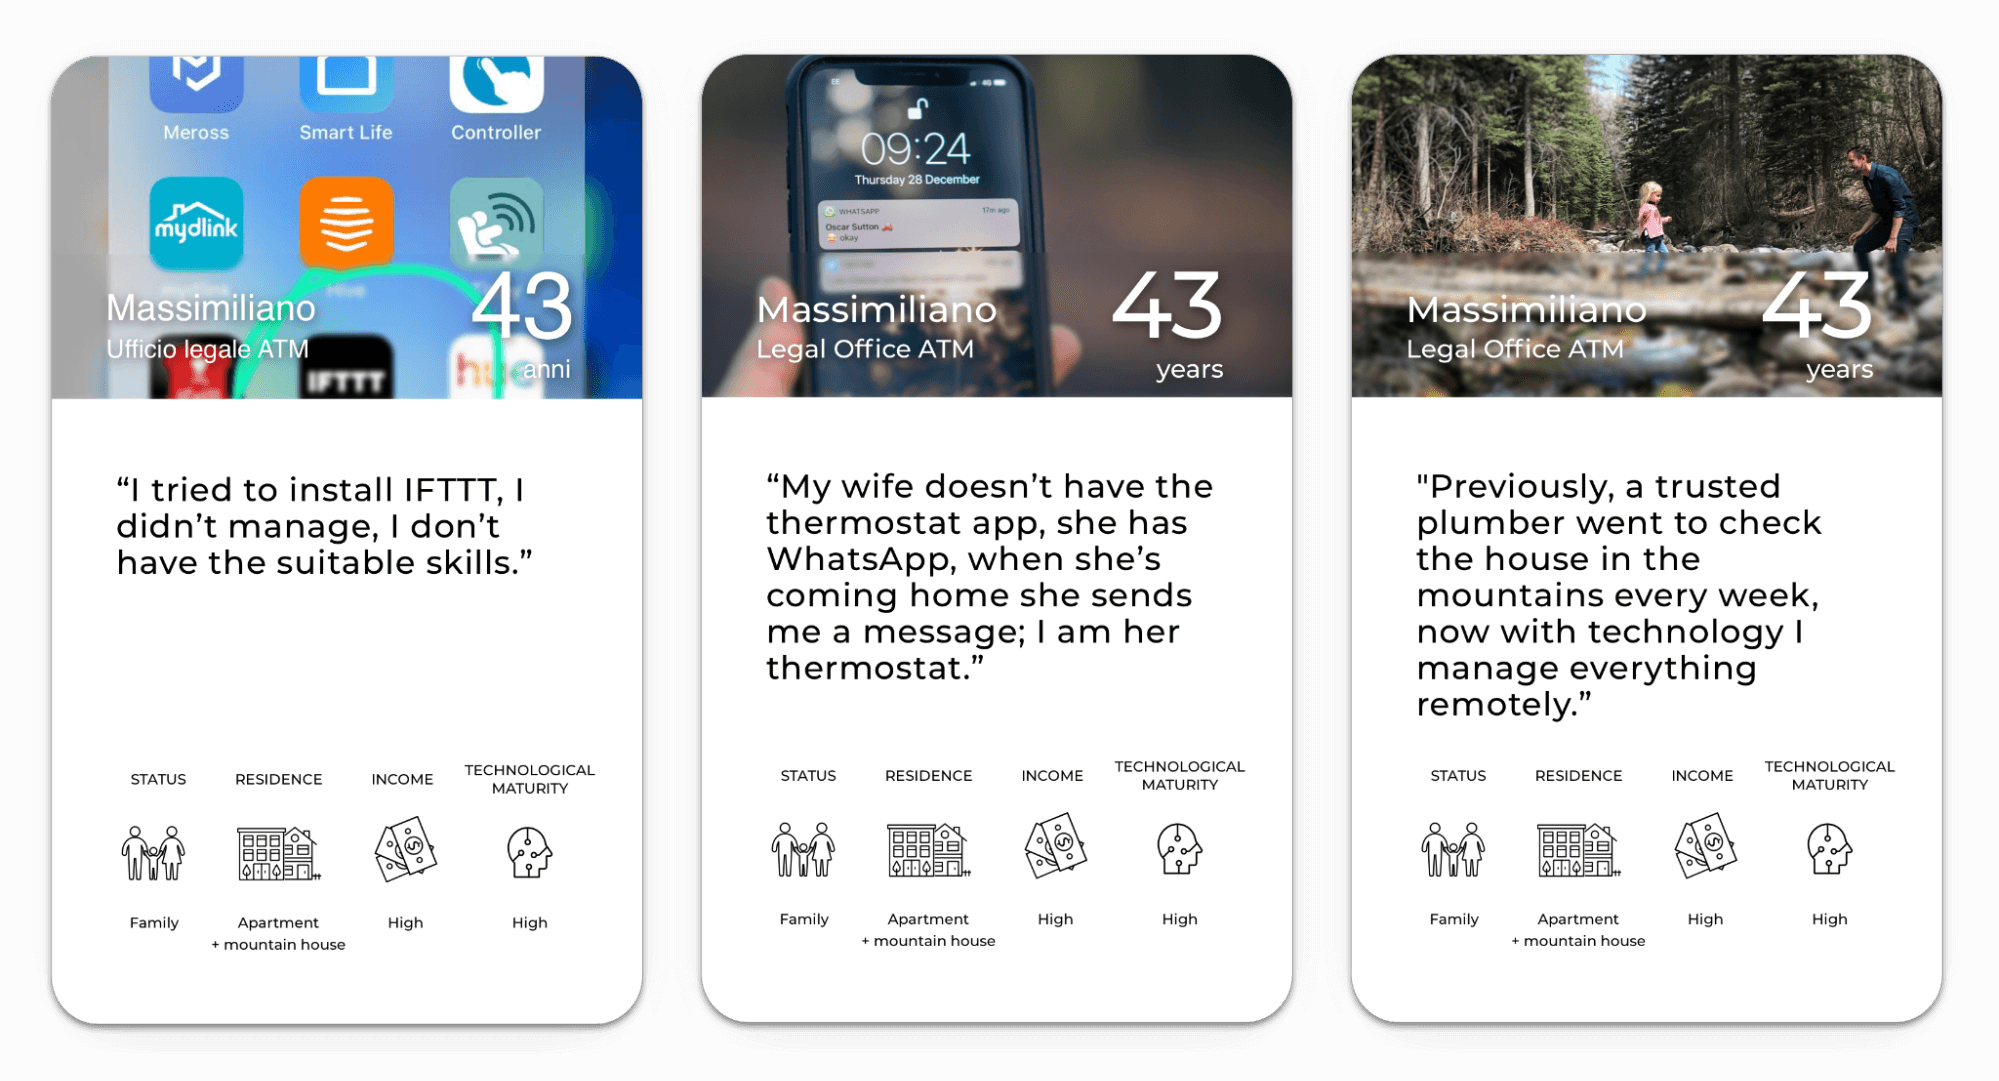 Three cards, each showing a different lifestyle photo, a quote that correlates to that dynamic self's attitude about technology, and some basic demographic info